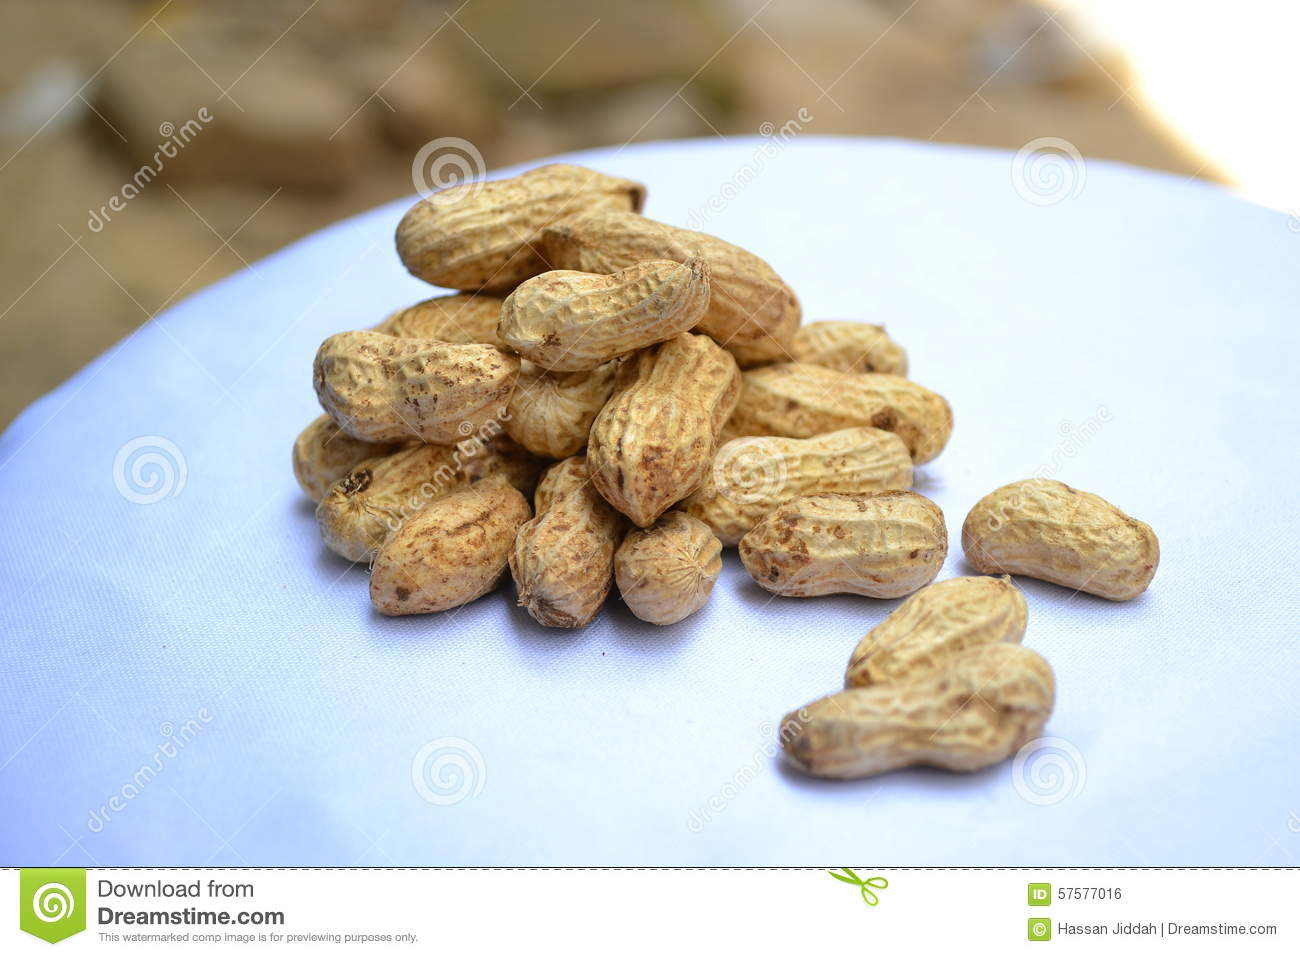 A BUSINESS PLAN SAMPLE OF A BOTTLED GROUNDNUT | PDF, DOCX, PPT,